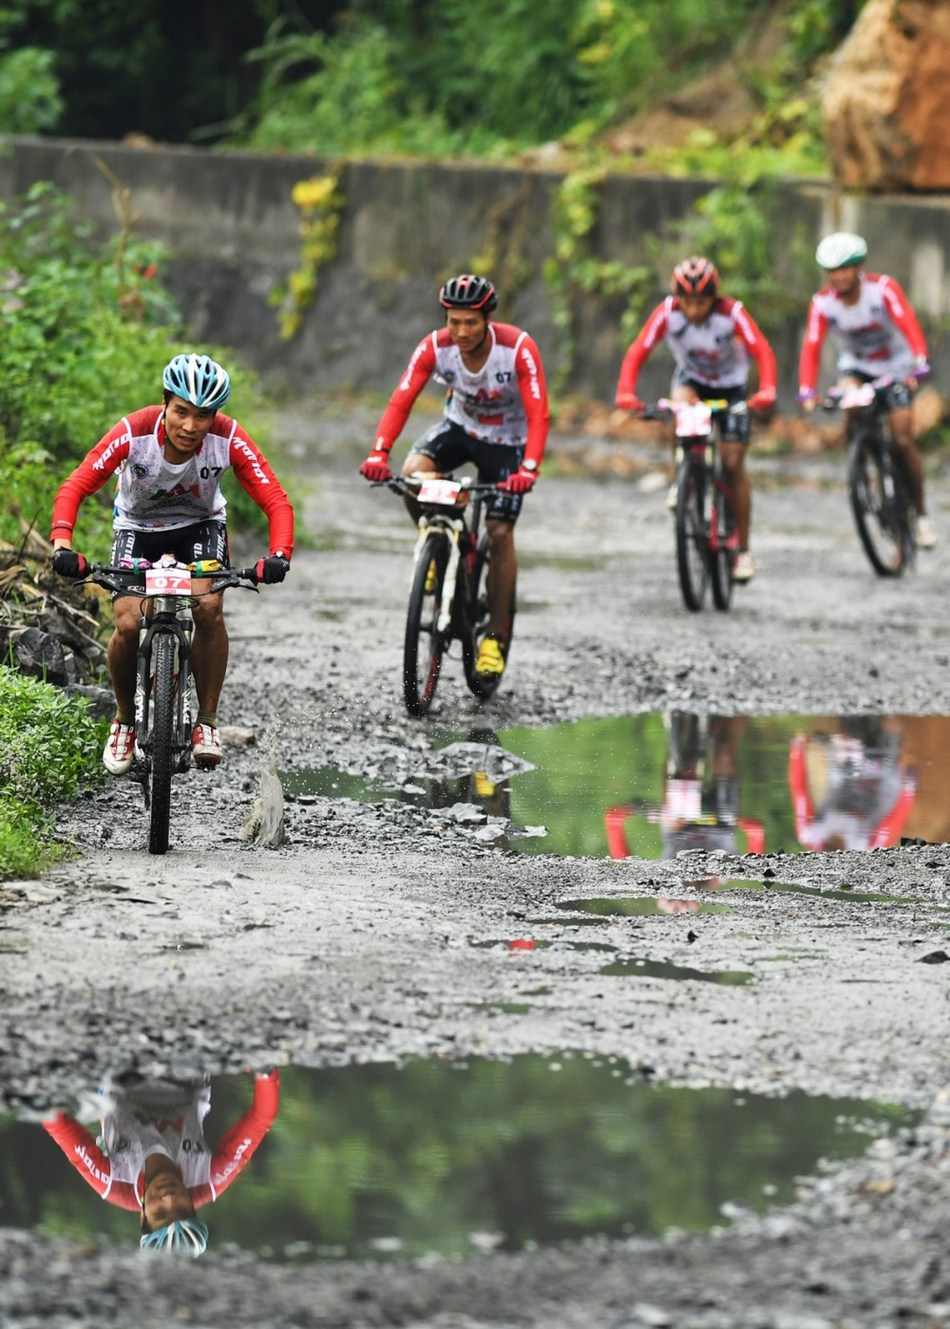 The team from the Zunyi Medical University are racing in the mountain bike cycling competition on September 18. (PRNewsfoto/Wulong Publicity Dept.)